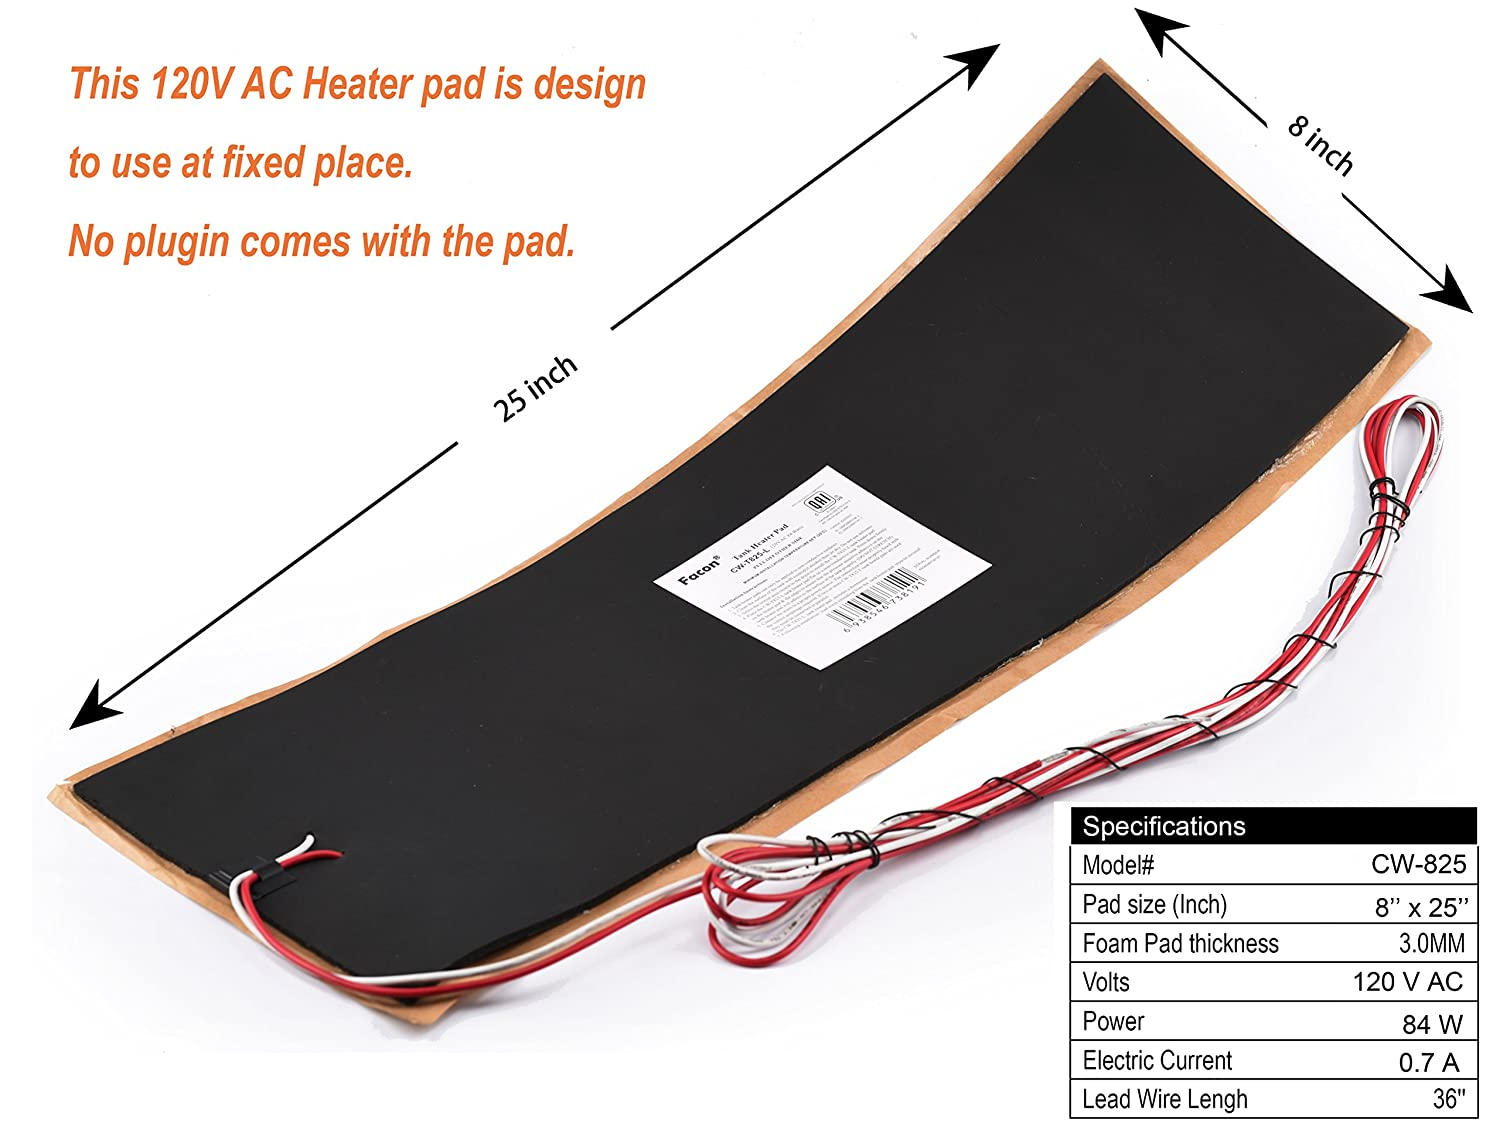 Facon 8.0x25 110Volts AC Water Holding Tank Heater Pad with Automatic Thermostat Control Pack of 1